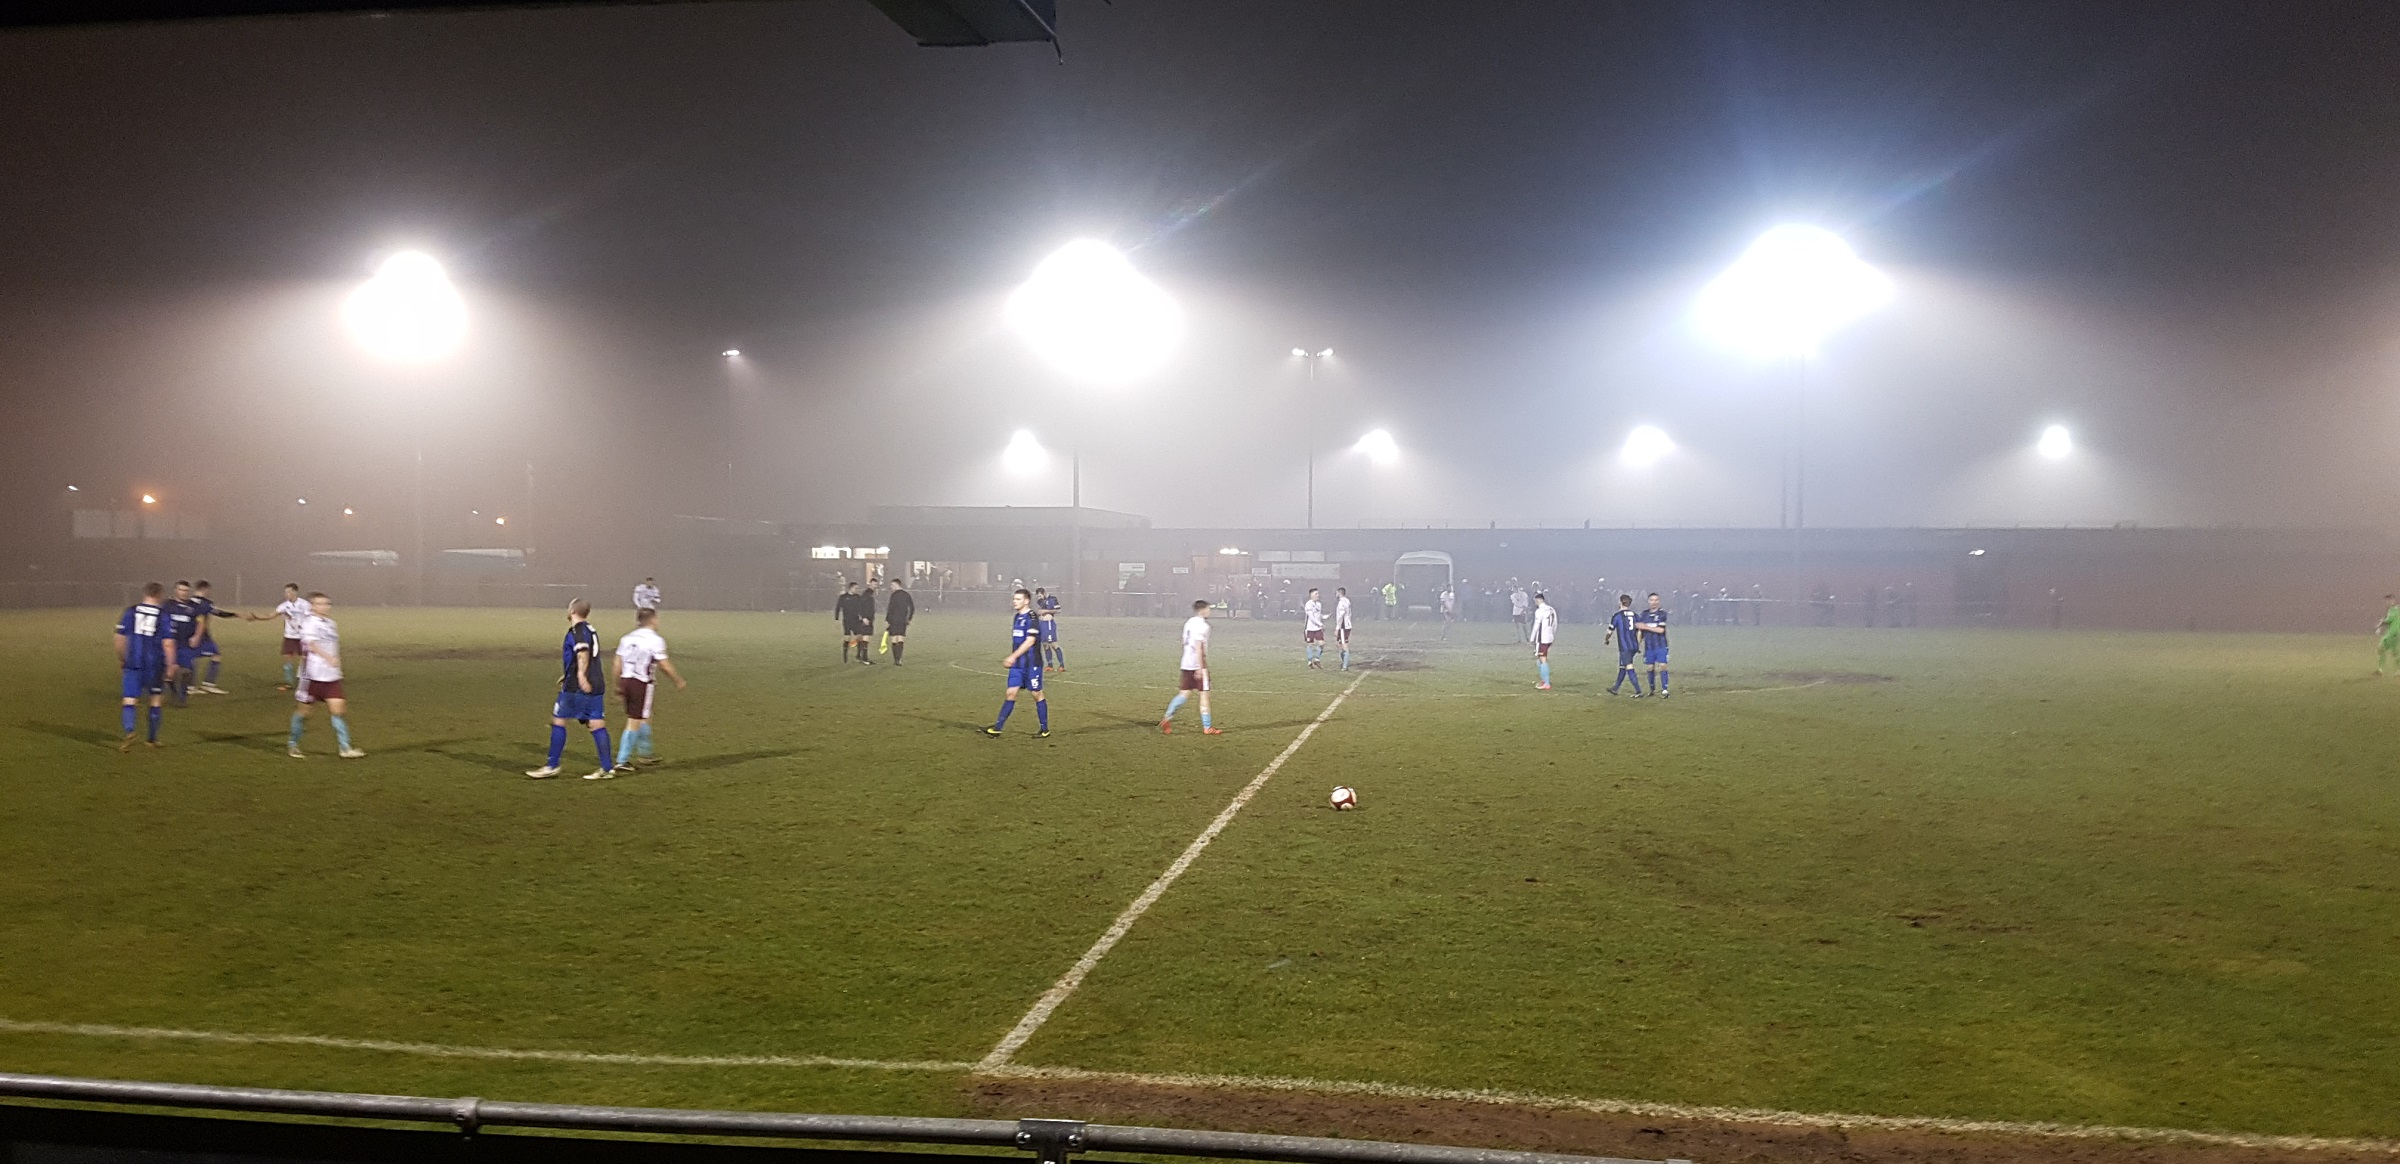 Cleethorpes Town 0-2 South Shields: Youthful Mariners into last eight